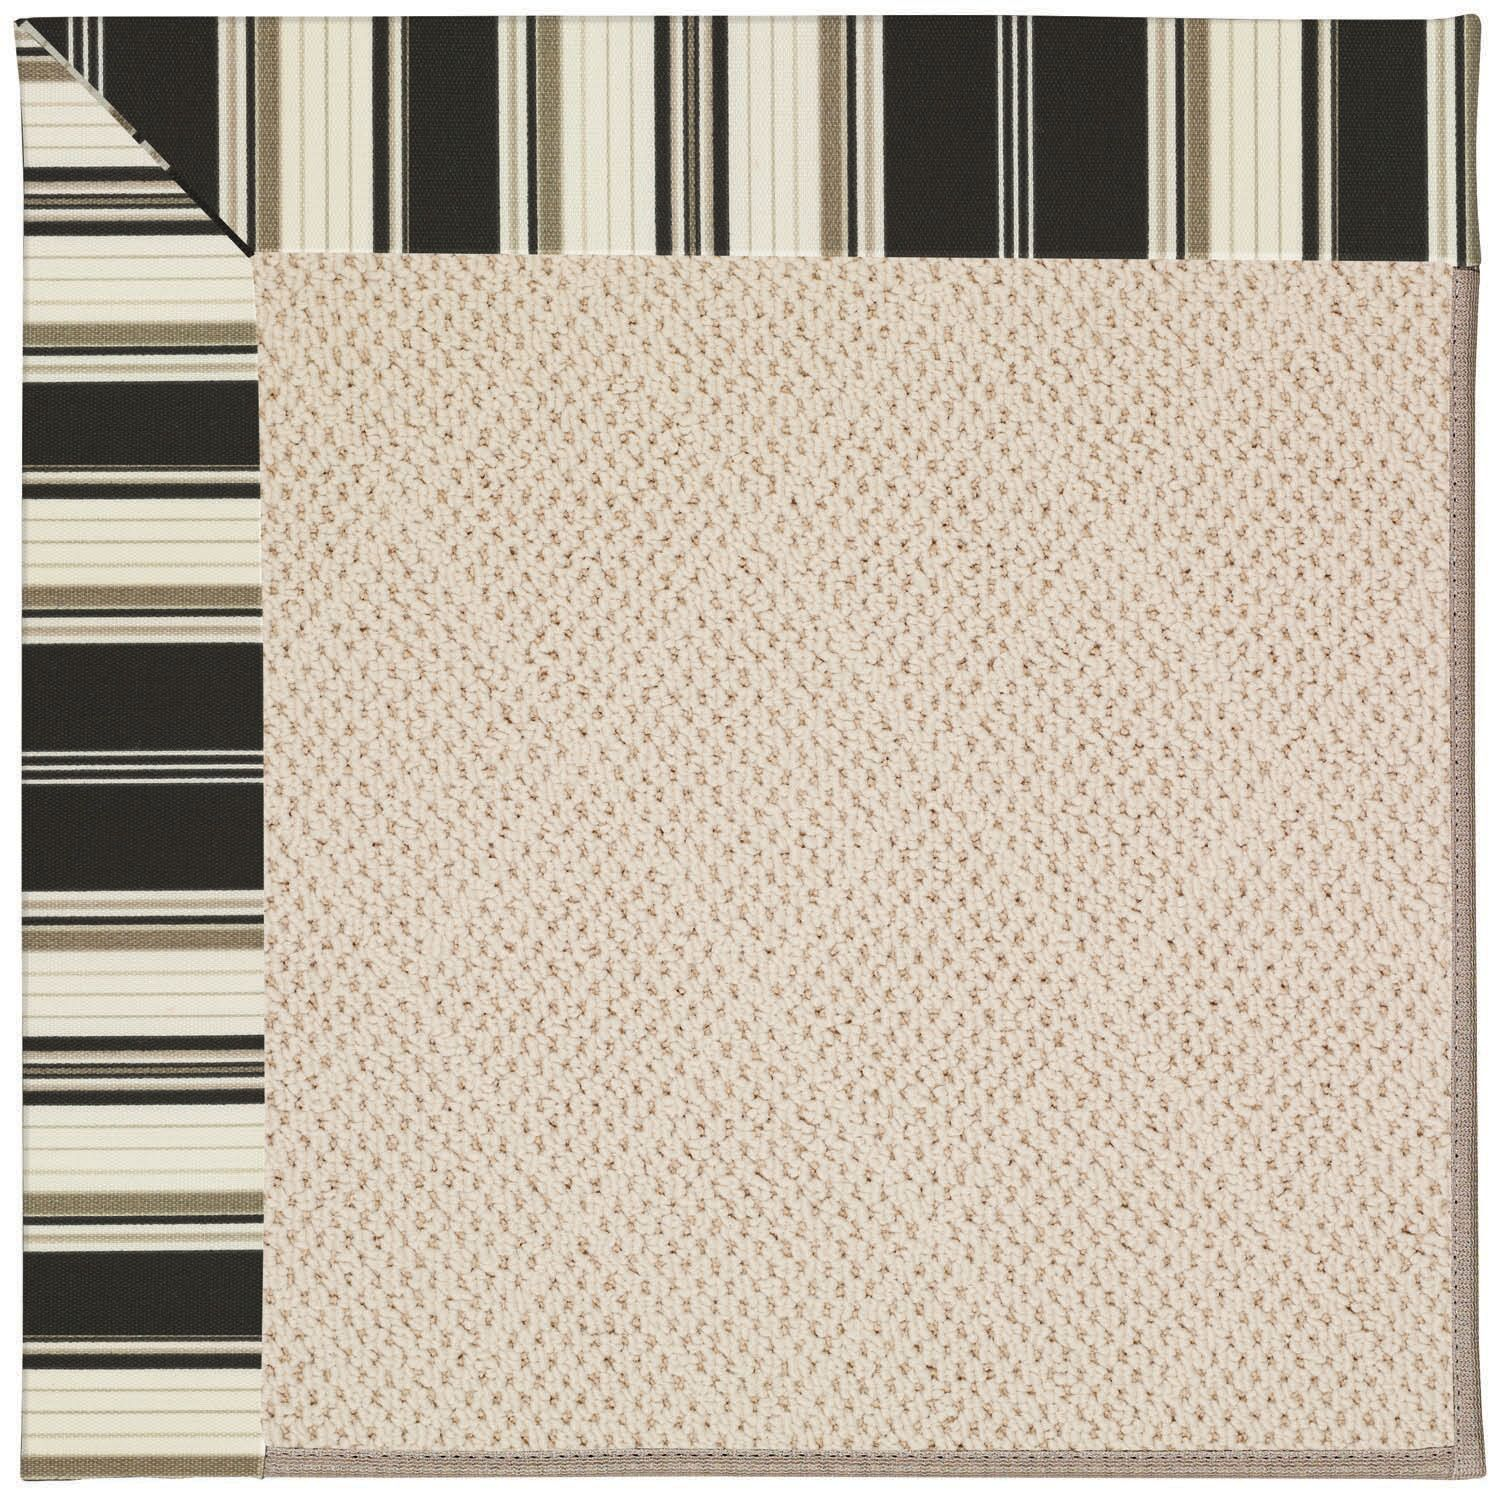 Lisle Beige Indoor/Outdoor Area Rug Rug Size: Square 4'